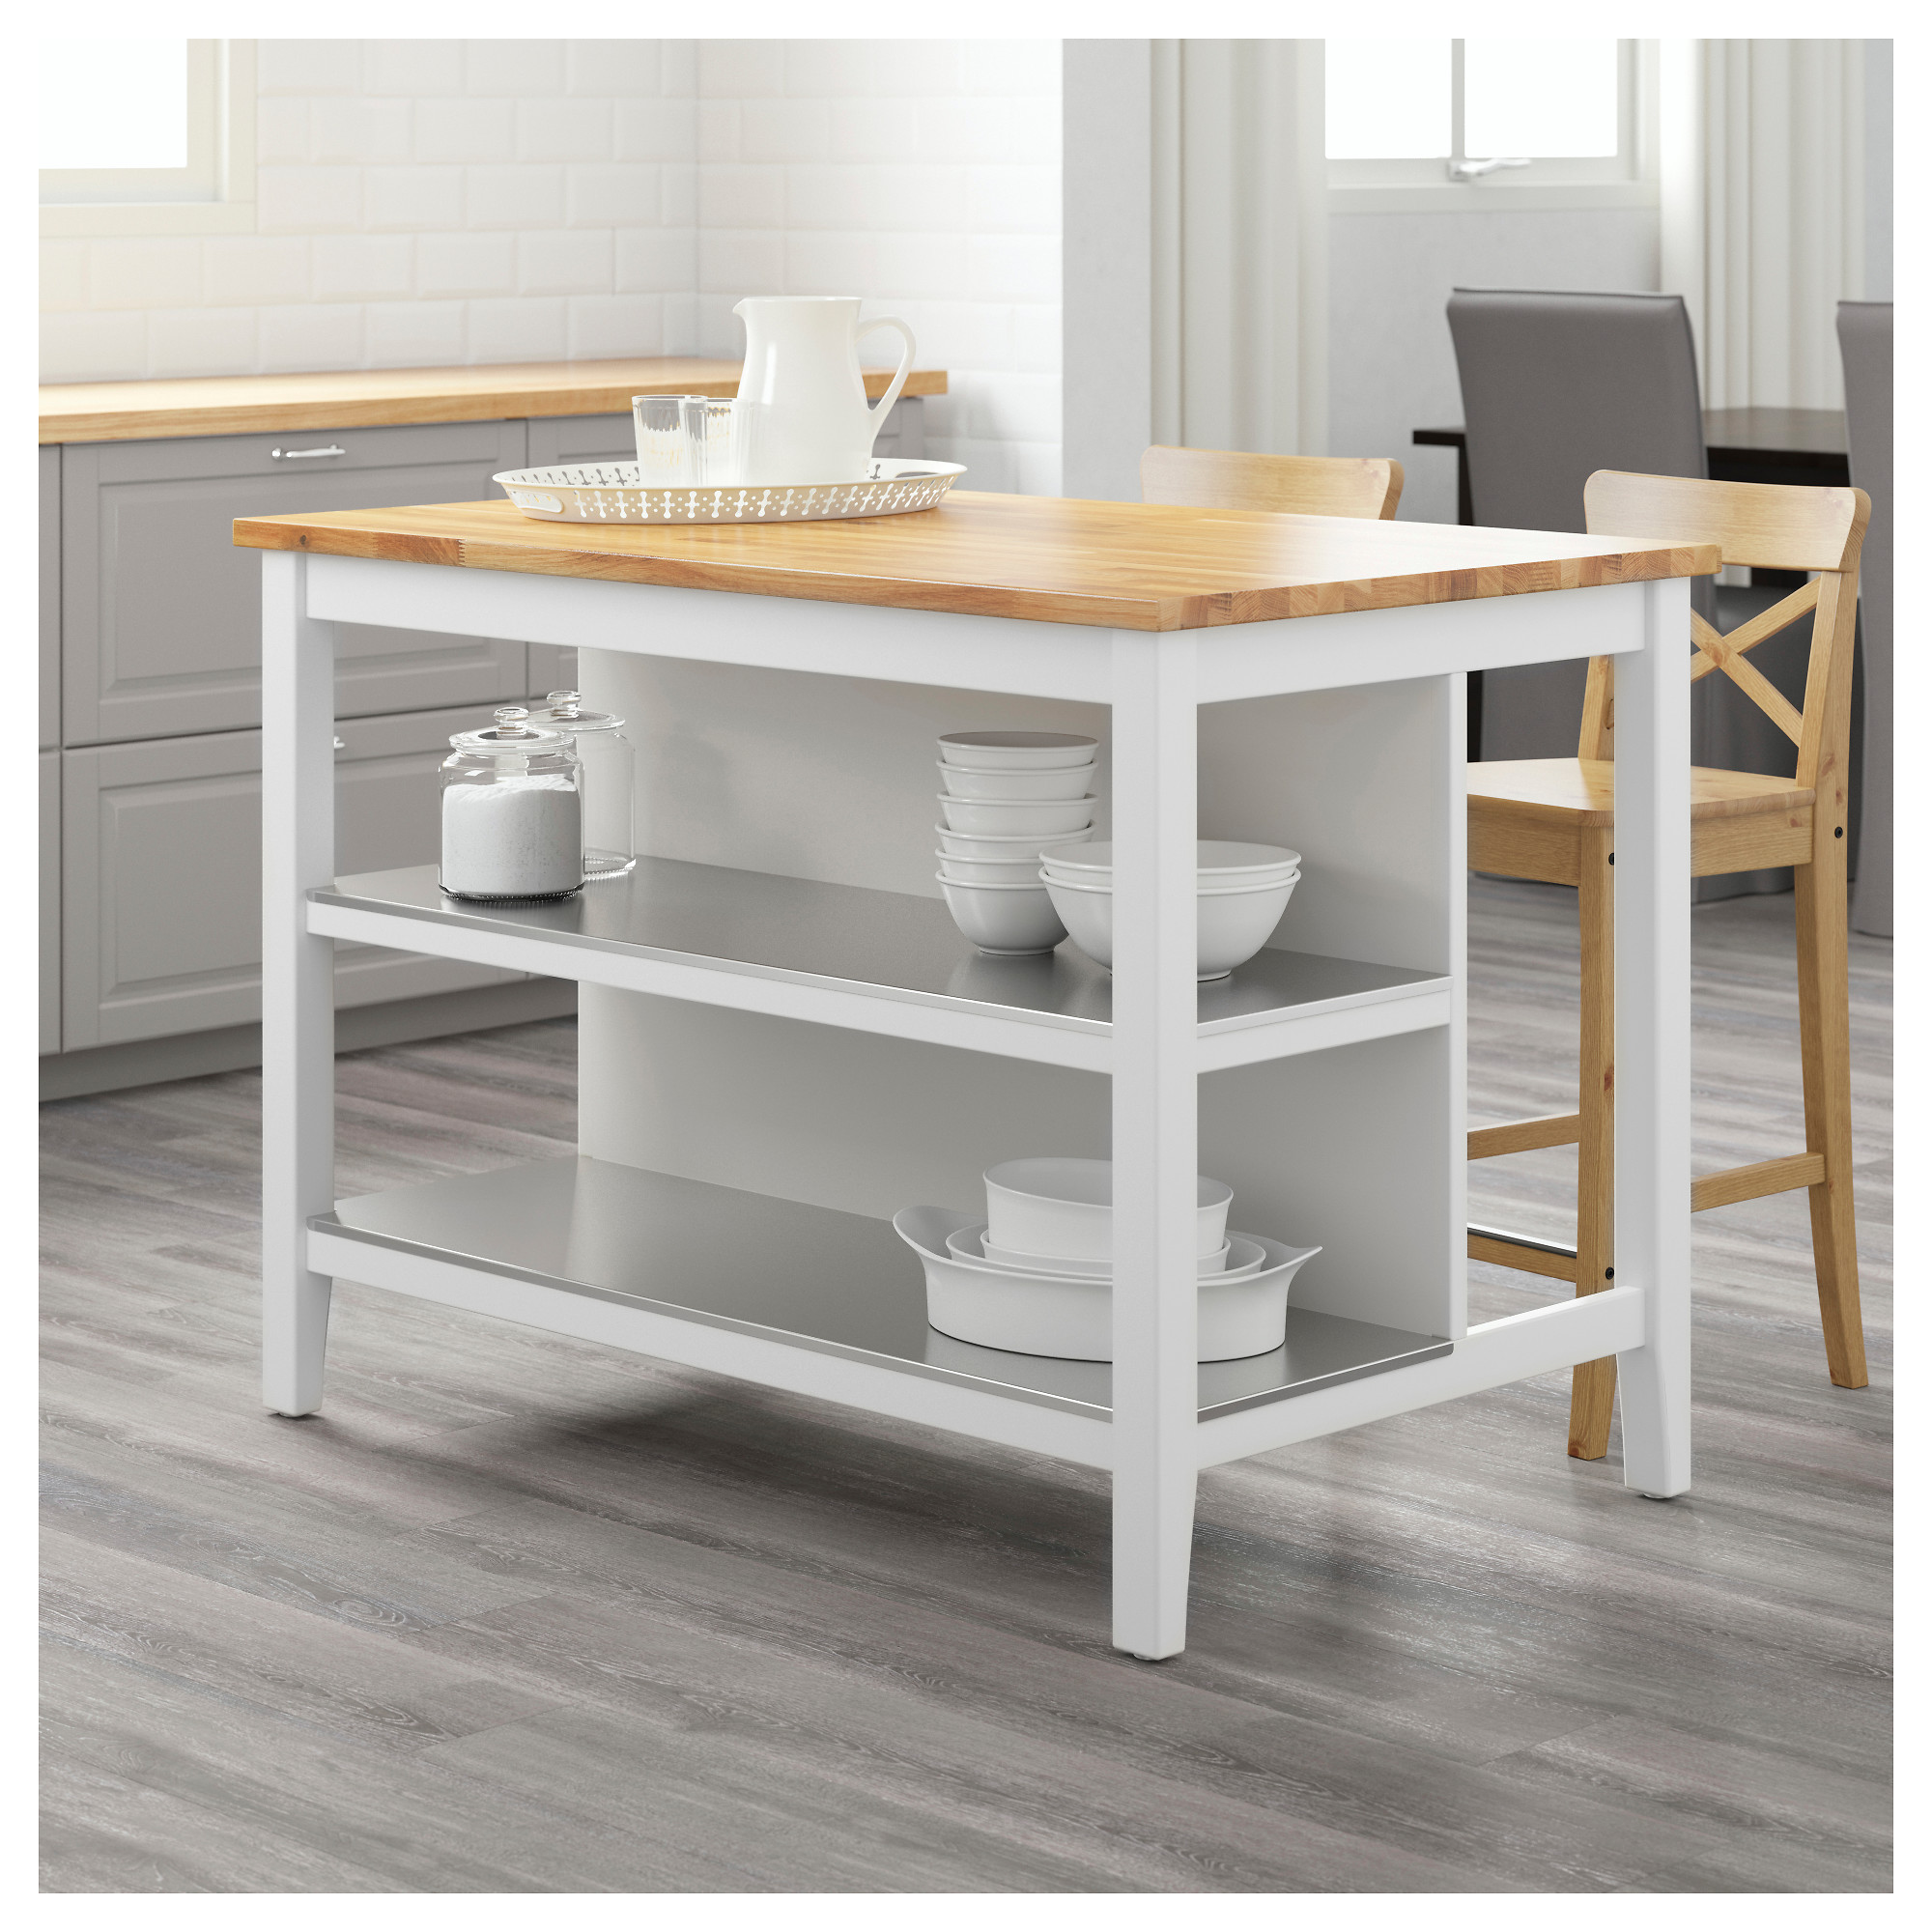 stenstorp kitchen island ikea - Kitchen Islands Ikea